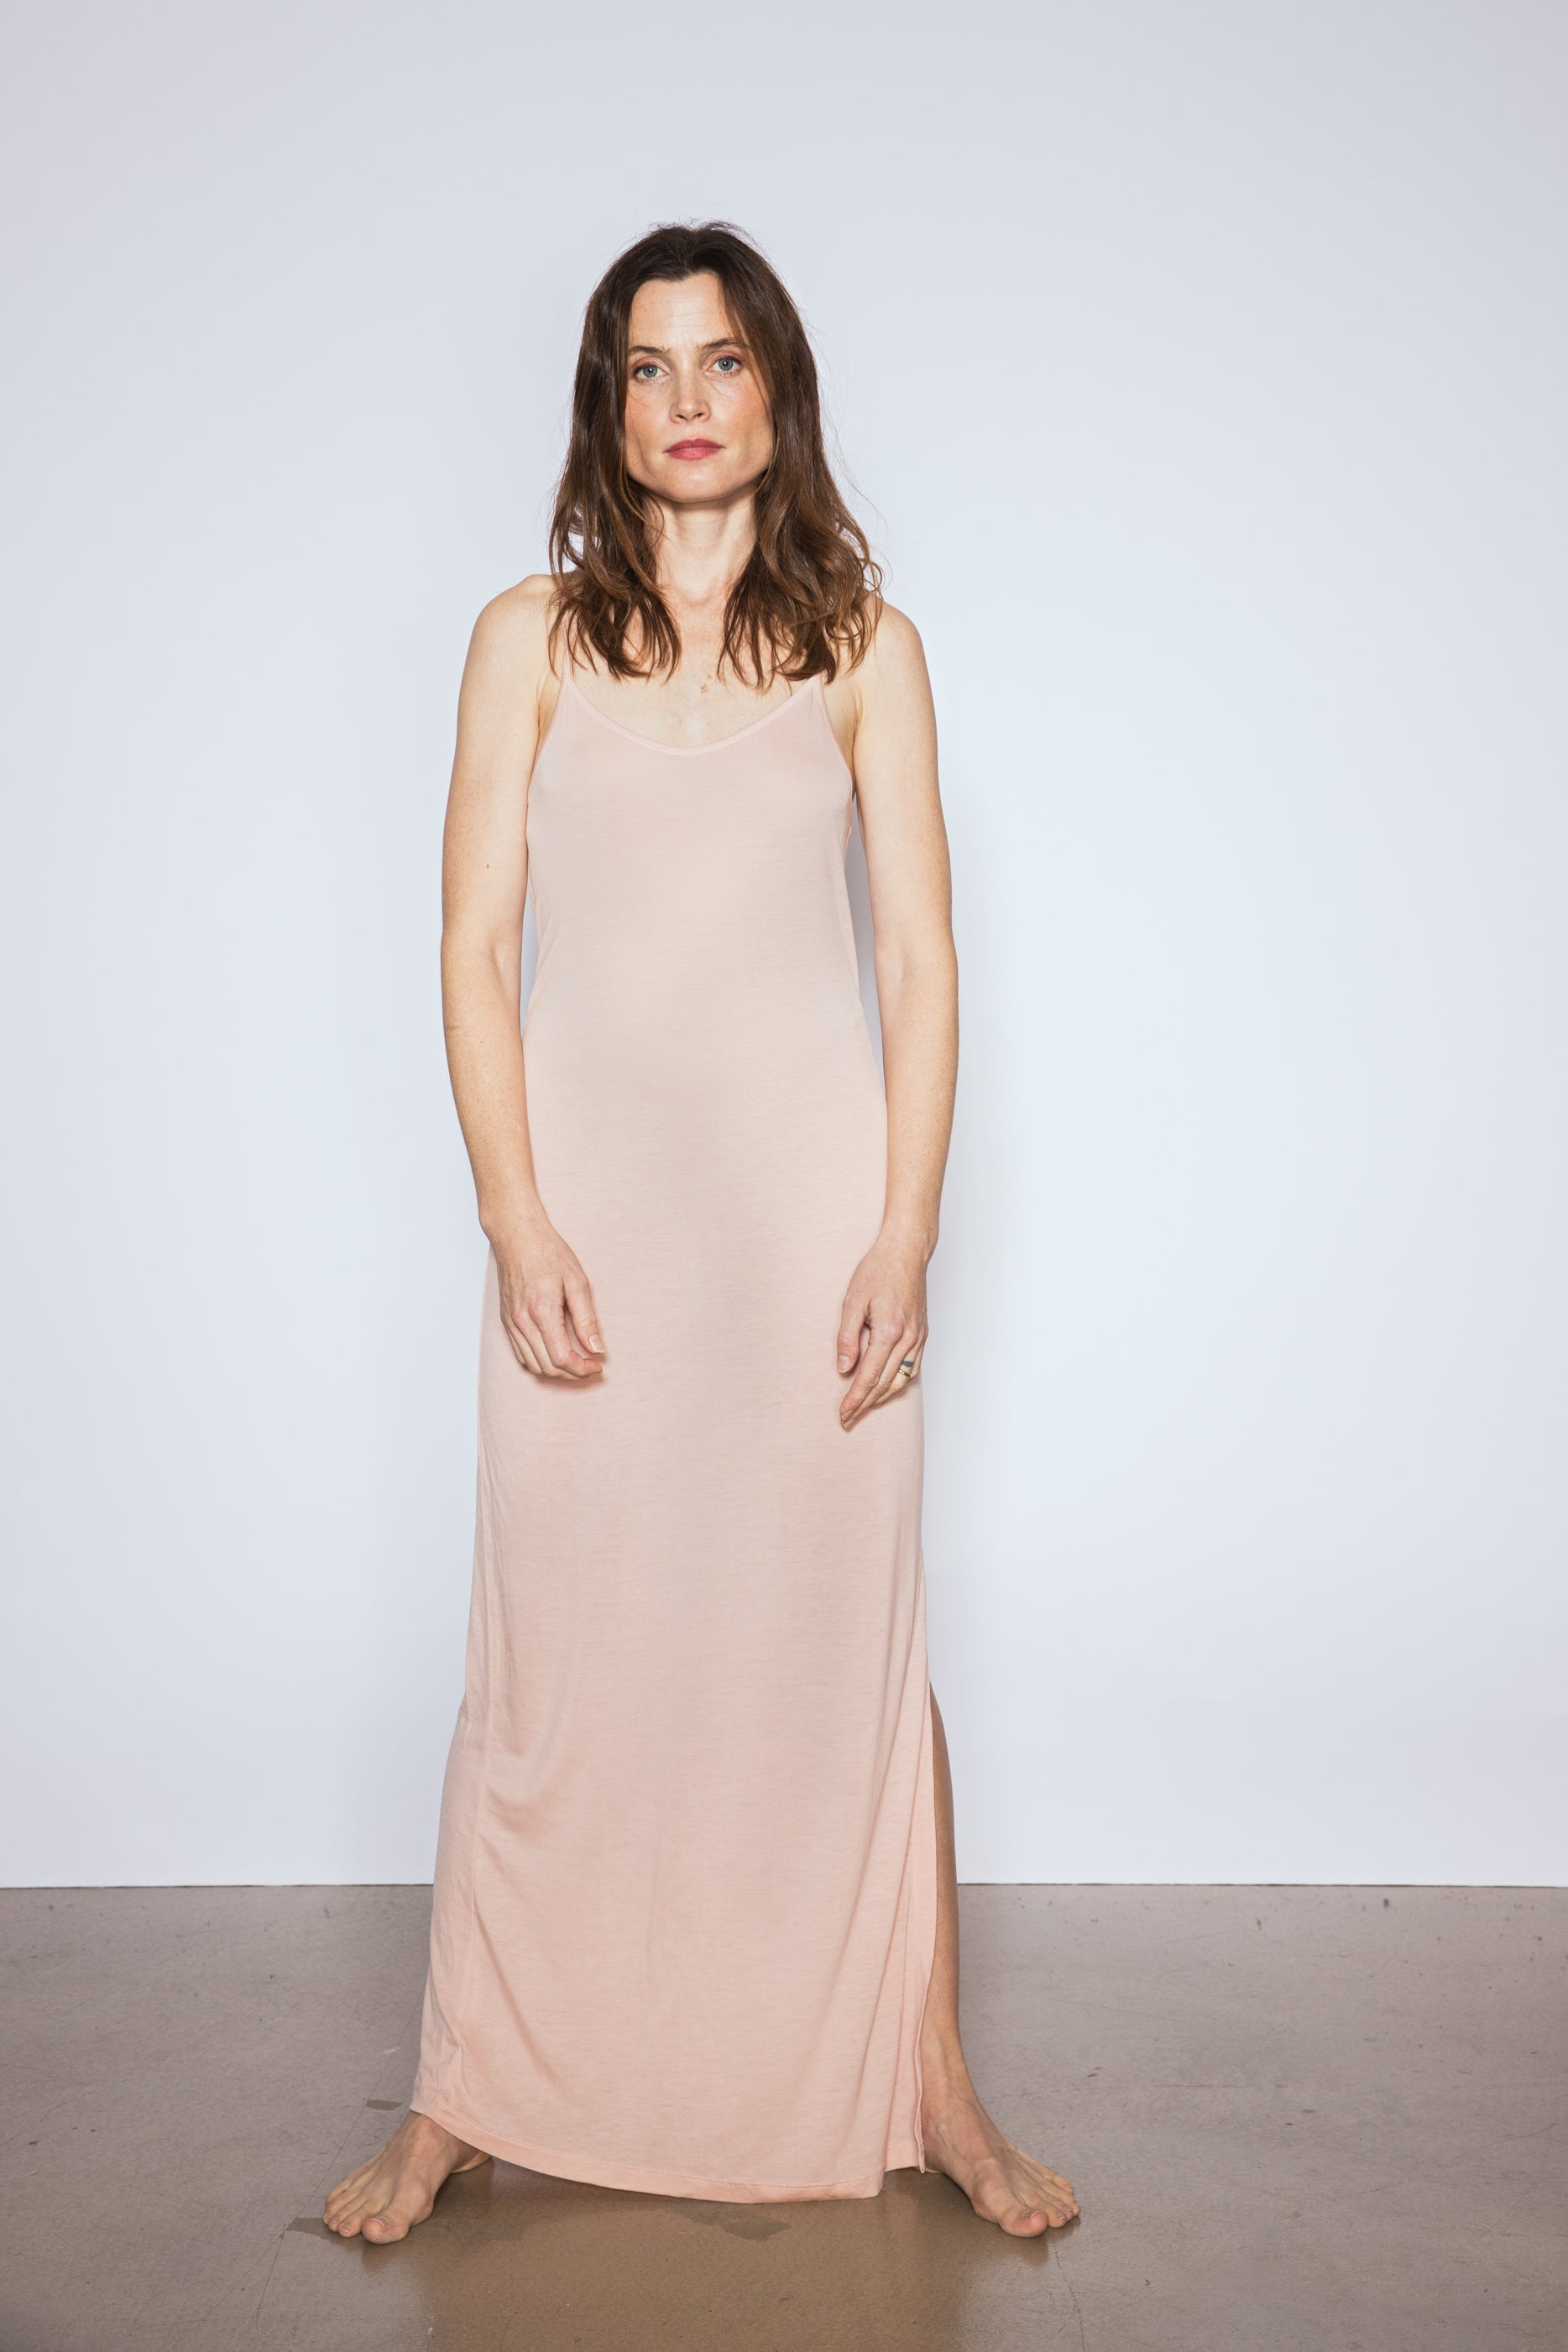 The Slip Dress